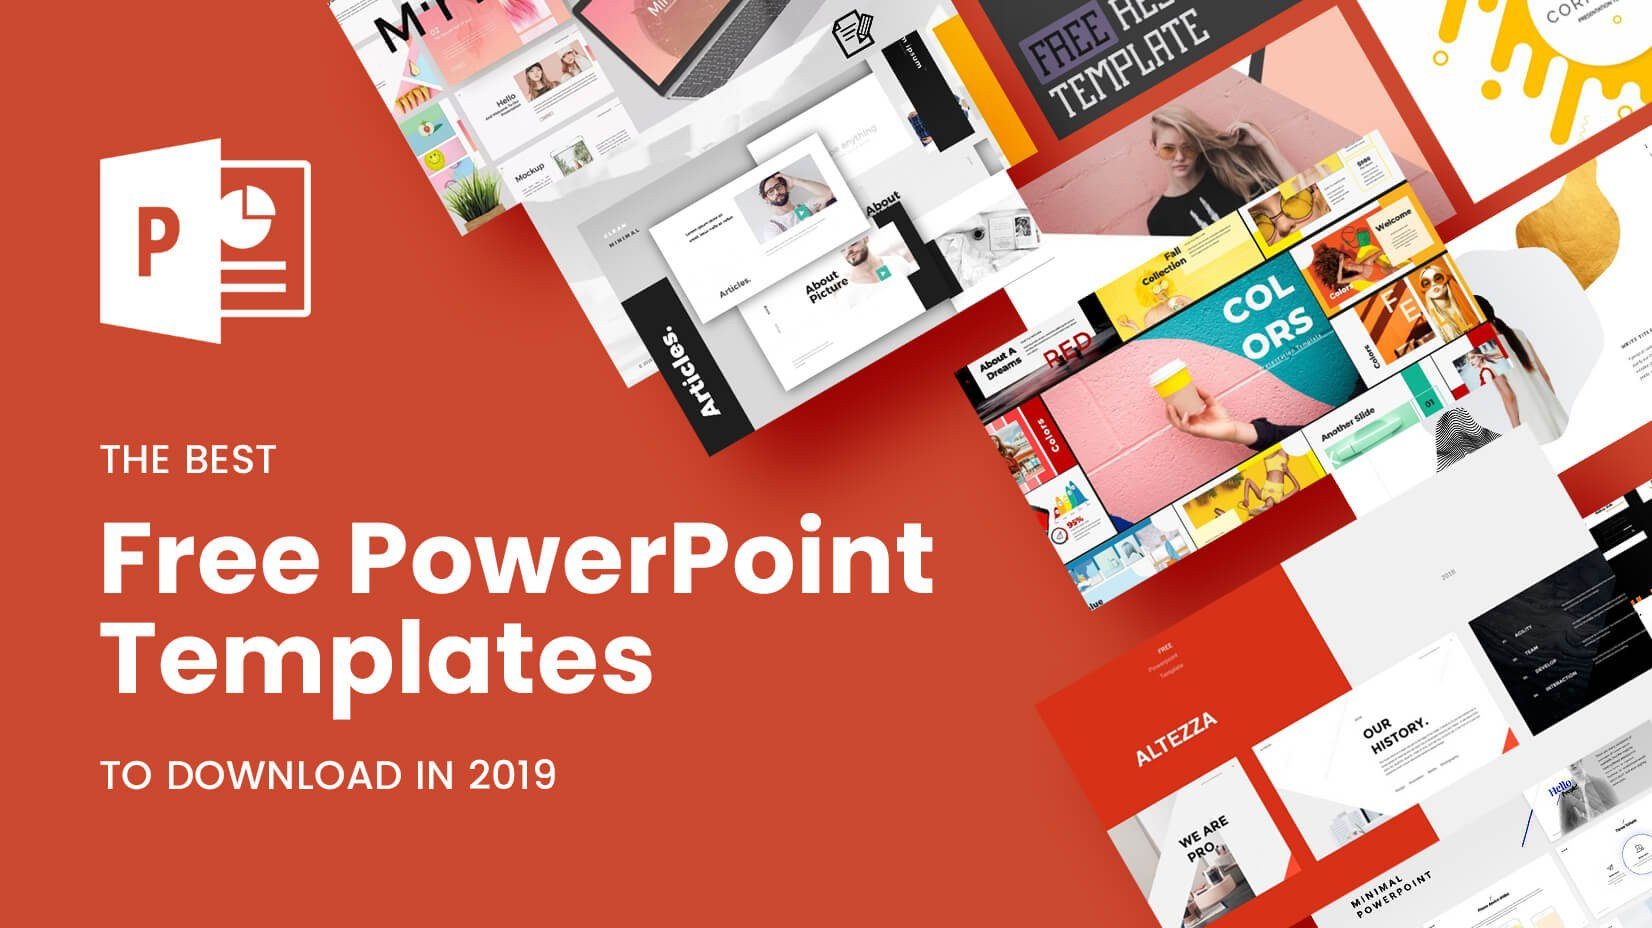 Free Templates for Powerpoint the Best Free Powerpoint Templates to Download In 2019